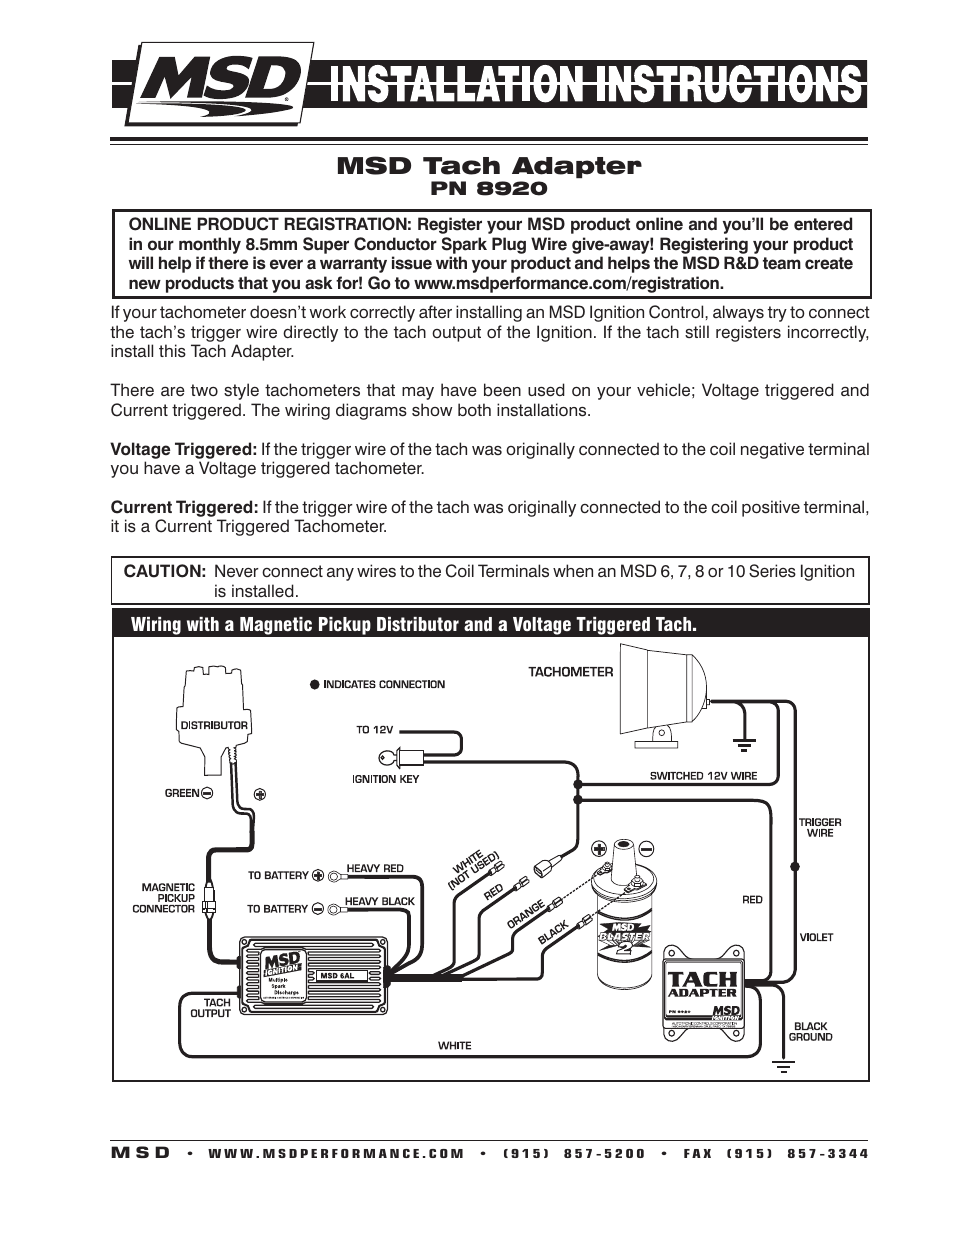 8910 Eis Msd Tach Adapter Wiring Diagram Worksheet And Blaster Coil Schematics Diagrams U2022 Rh Parntesis Co